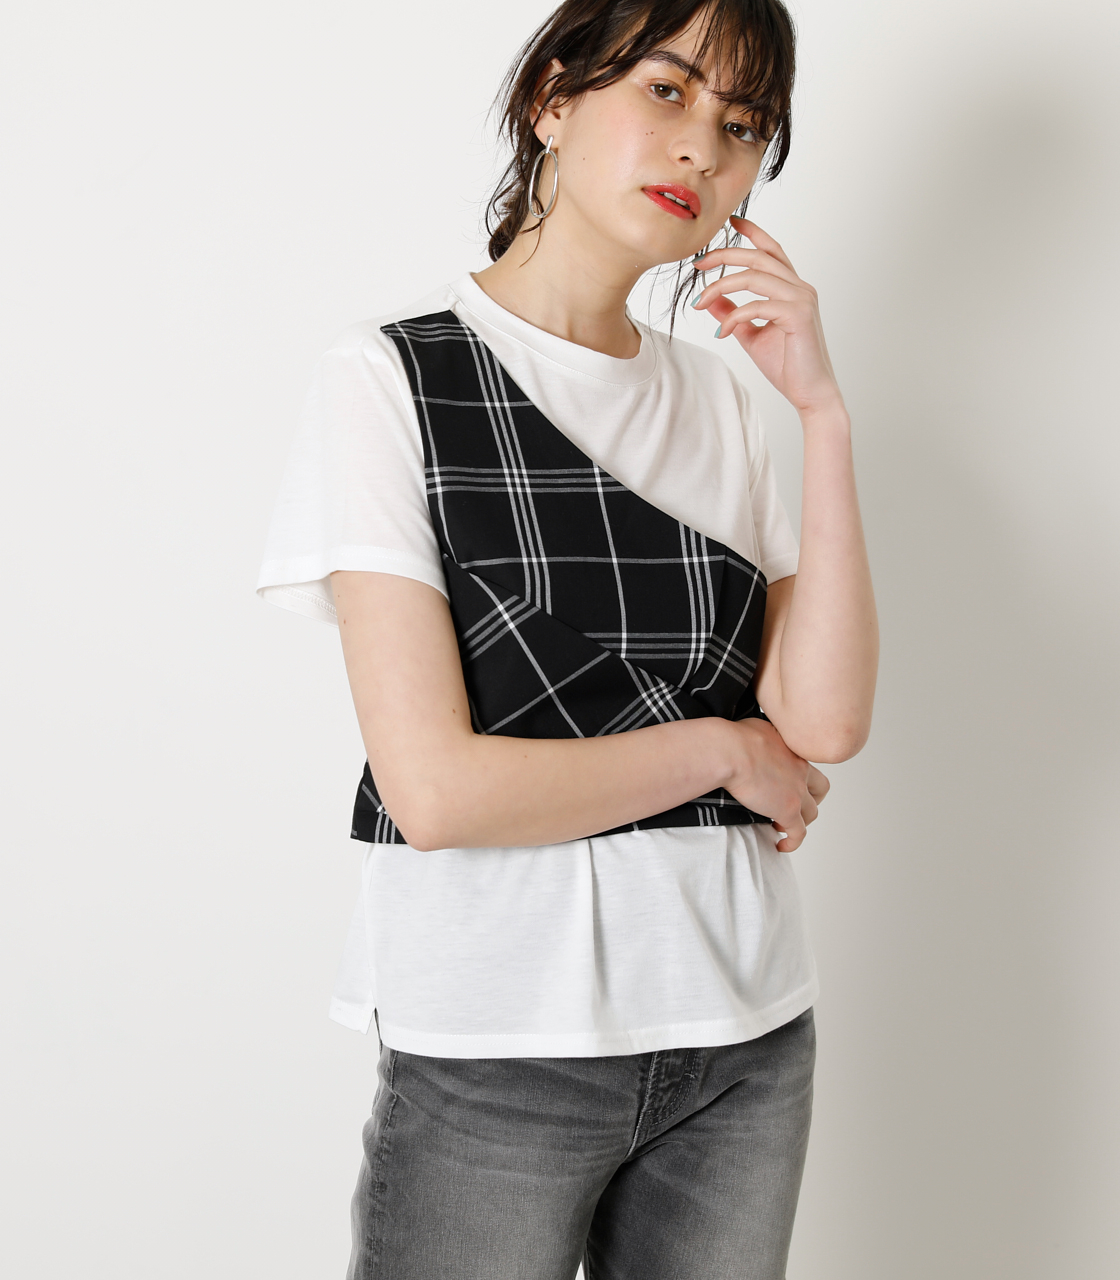 ONESHOULDER CHECK BUSTIER TOPS/ワンショルダーチェックビジタートップス 詳細画像 柄BLK 1